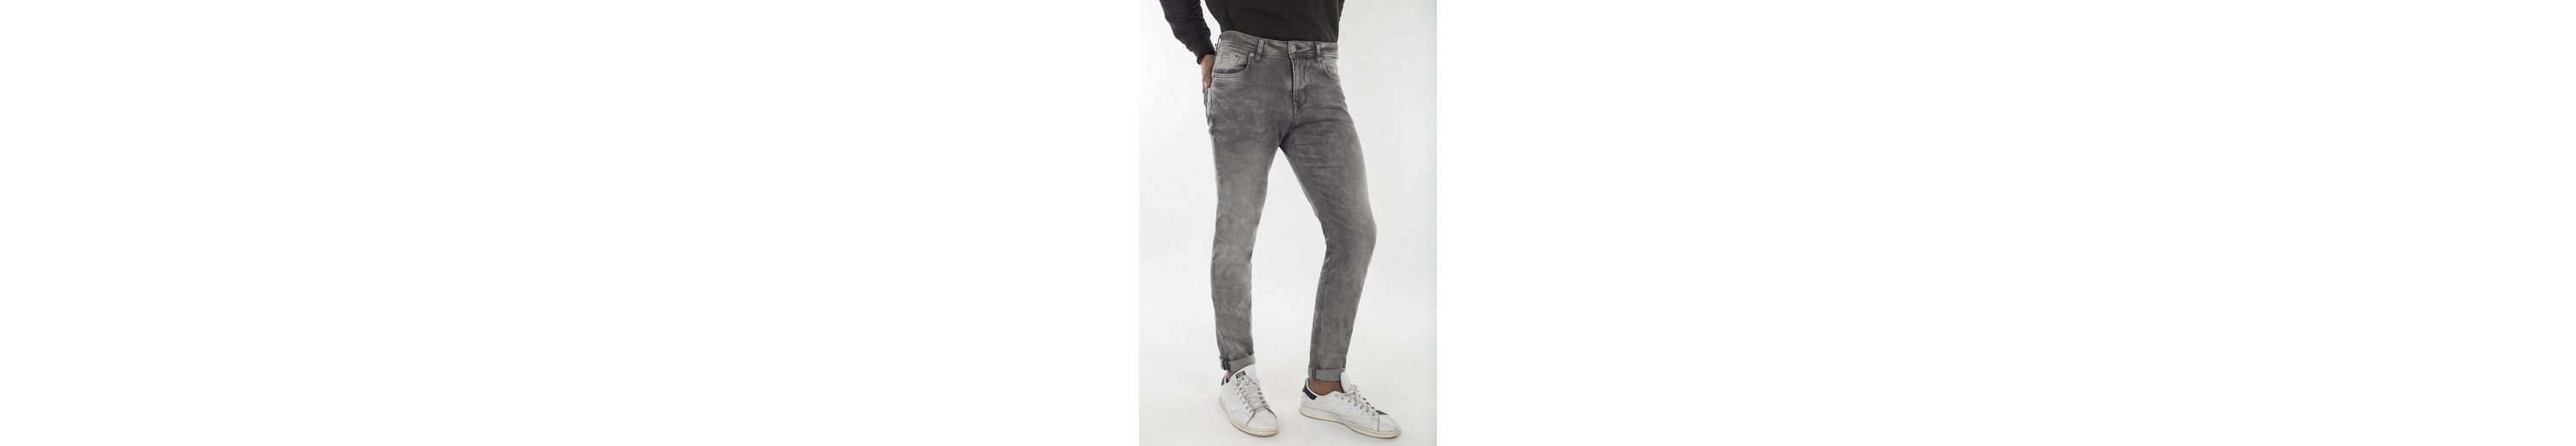 M.O.D MIRACLE OF DENIM Jeans im Used-Look Sast Online 96YB7